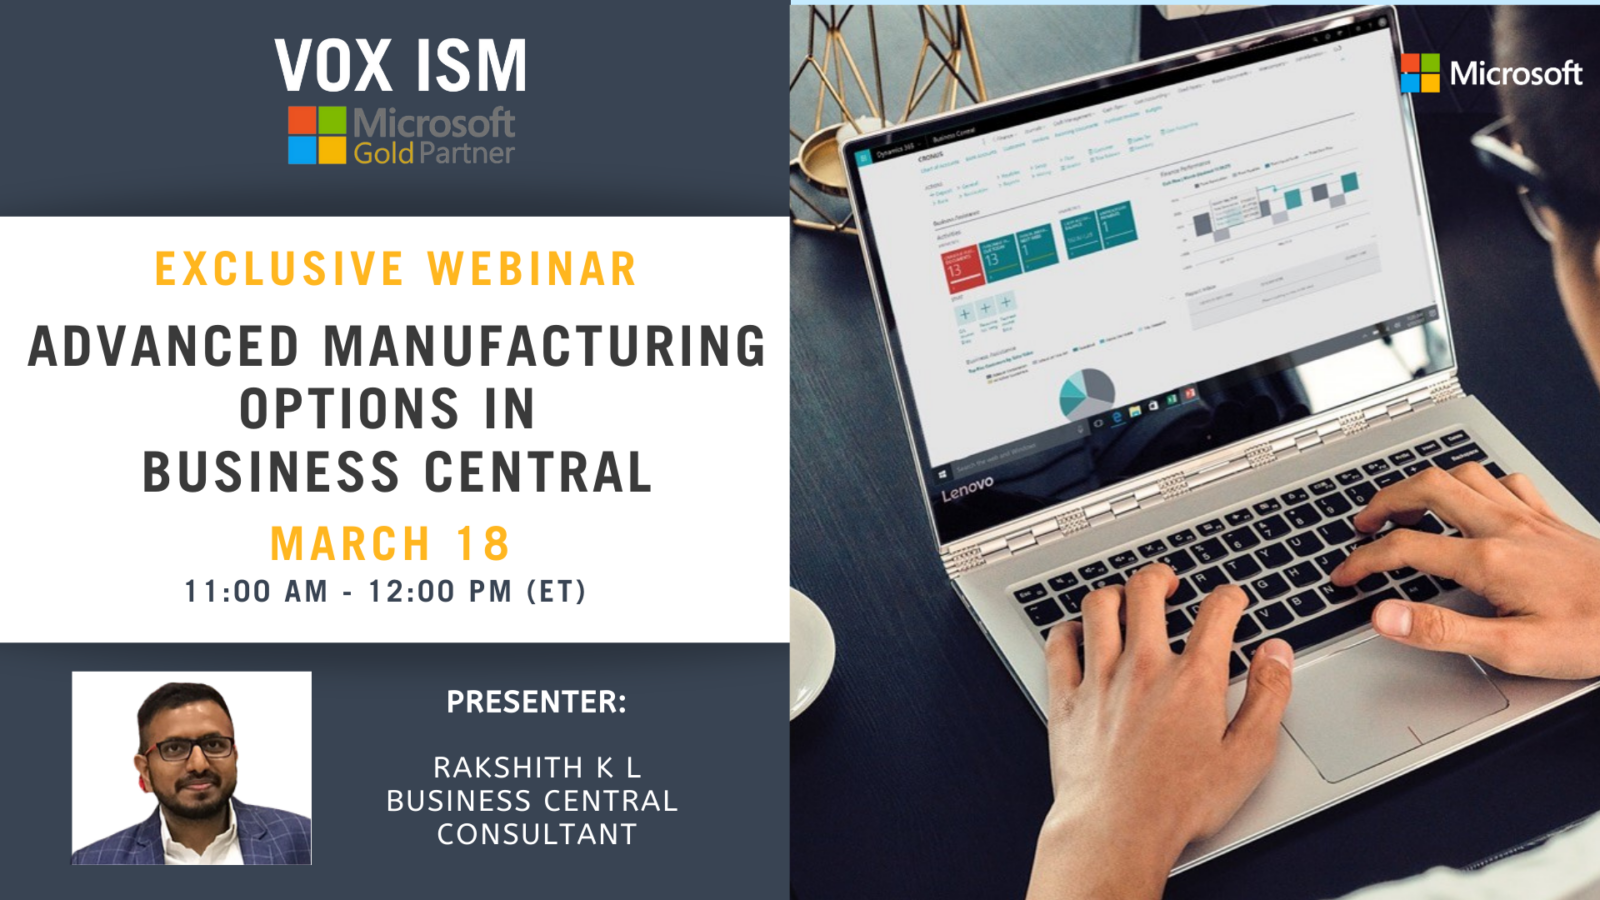 Advanced Manufacturing Options in Business Central - March 18 - Webinar